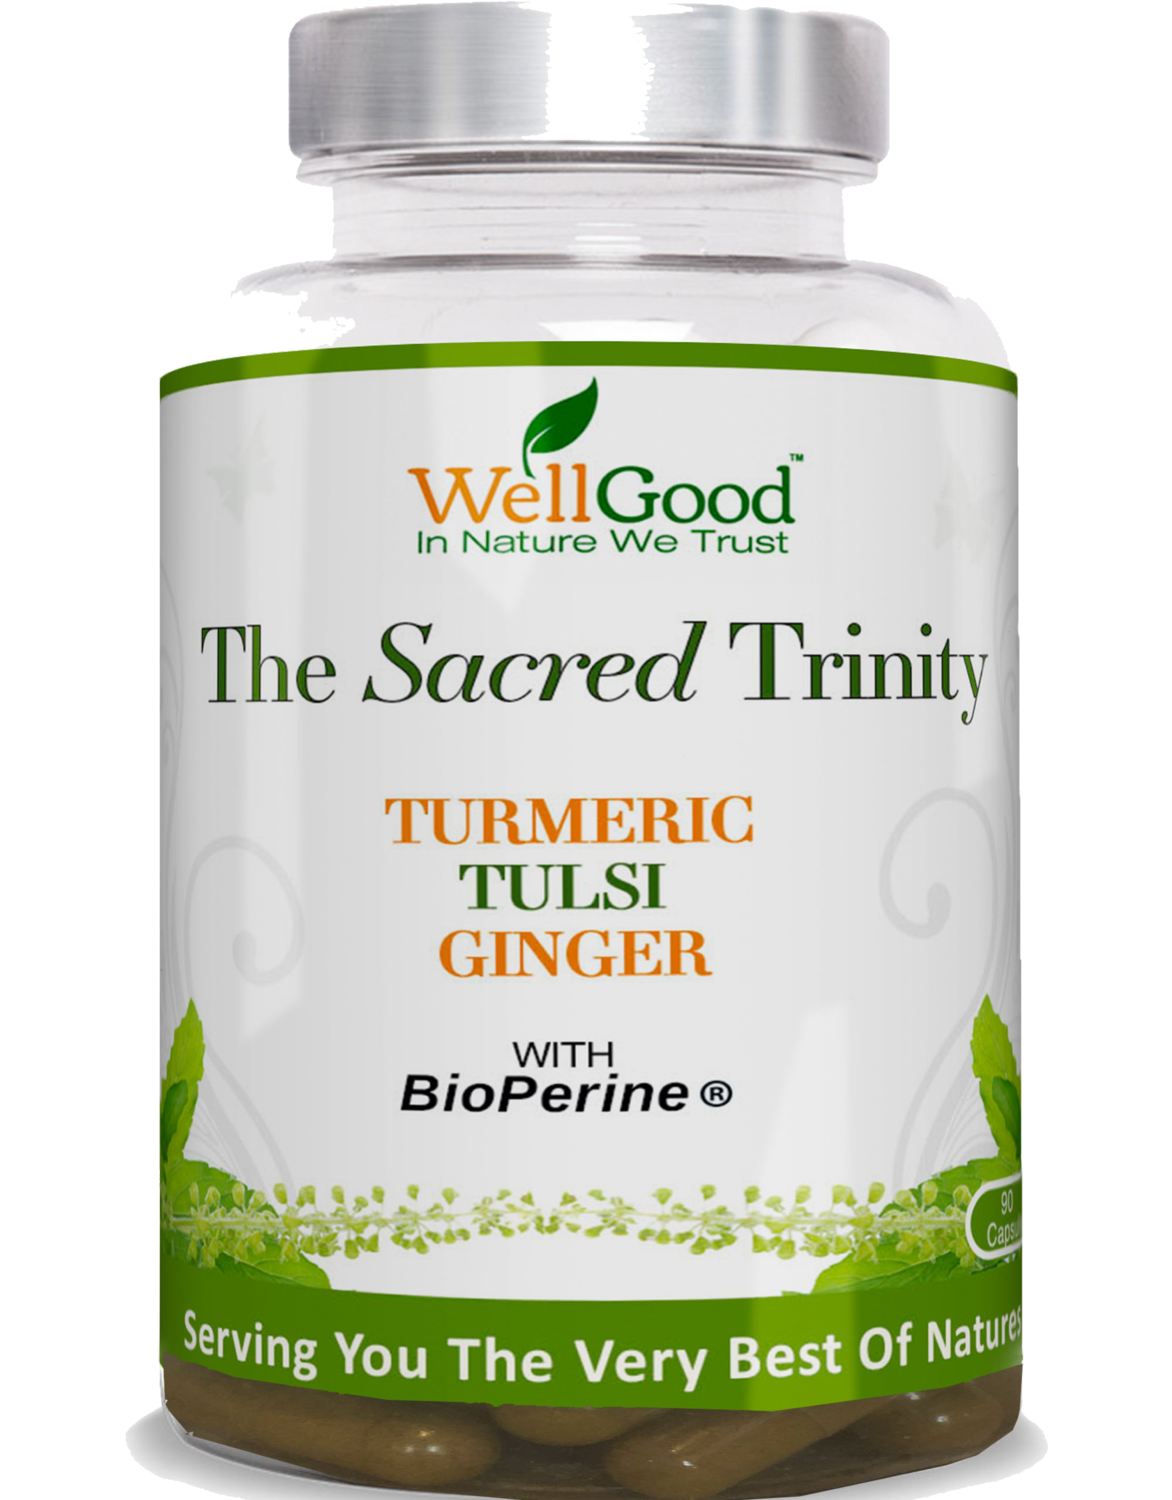 The Sacred Trinity - Turmeric (curcumin), Holy Basil/Tulsi, Ginger with black pepper extract (Piperine) Bioperine